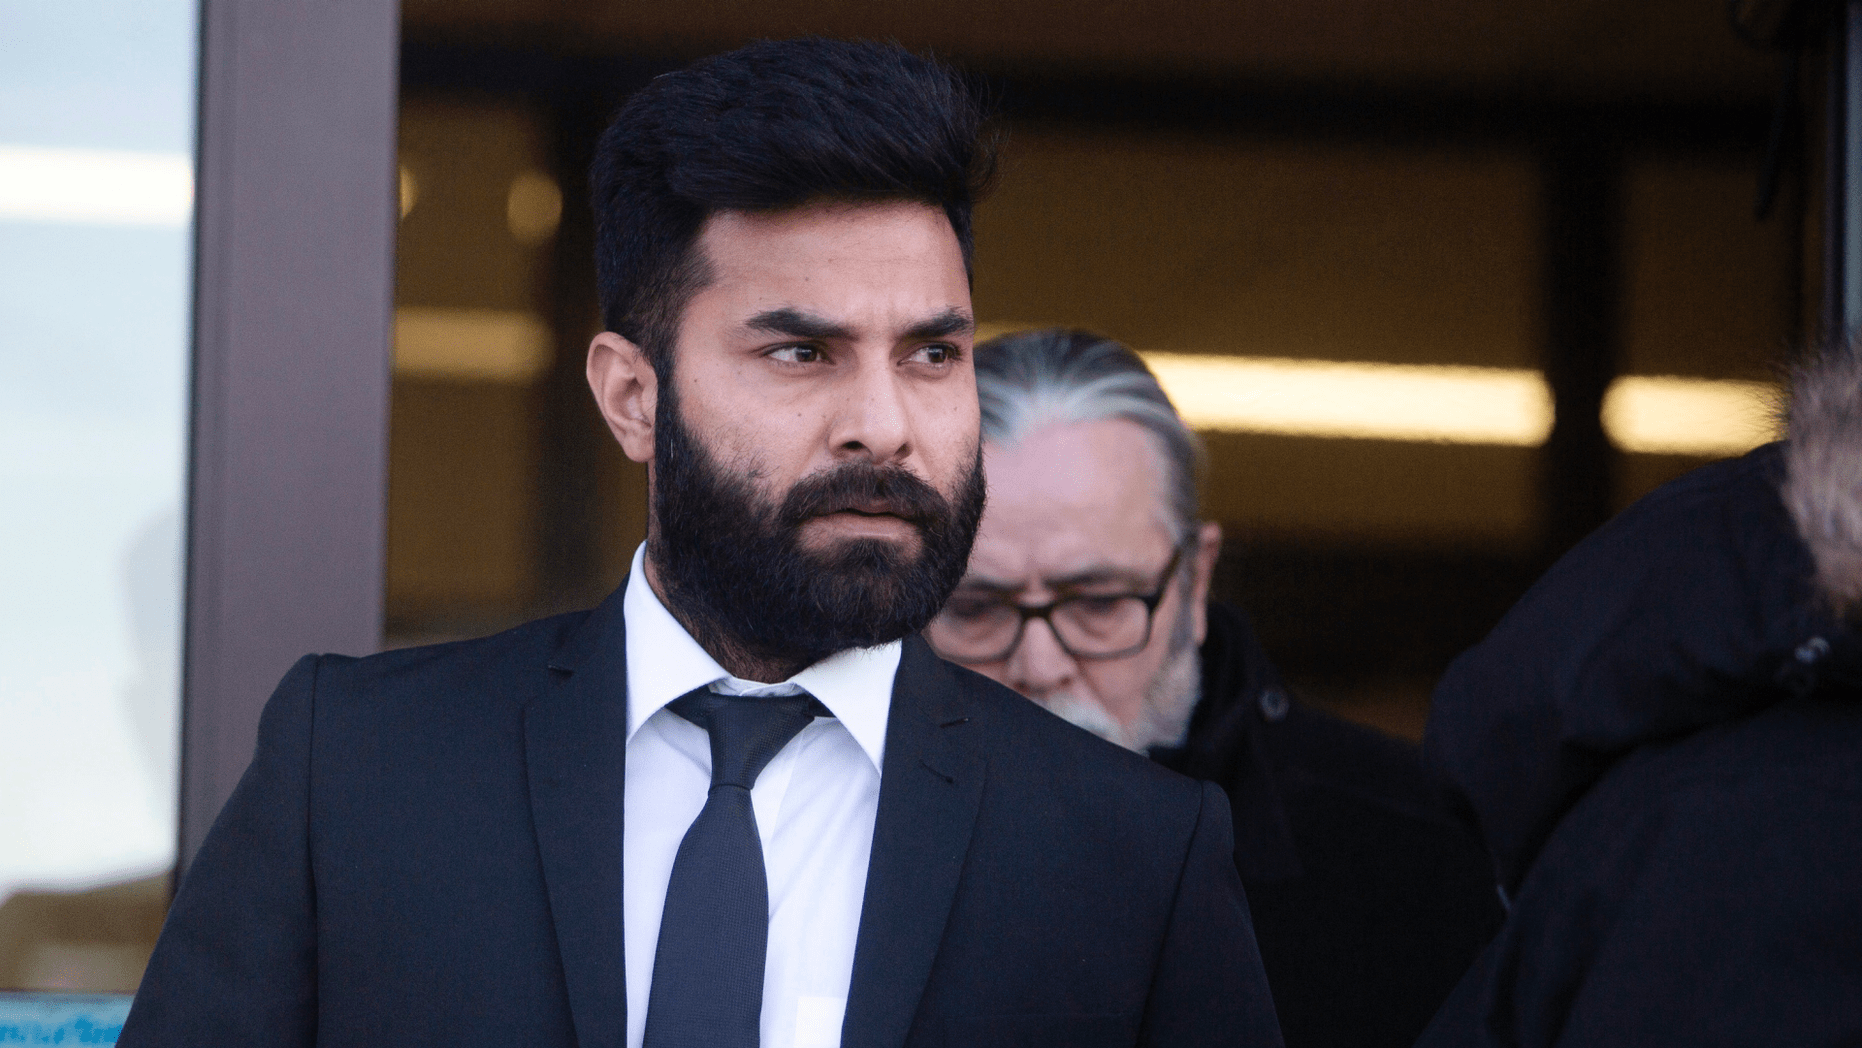 Jaskirat Singh Sidhupleaded guilty to all charges against him. (Kayle Neis/The Canadian Press via AP)